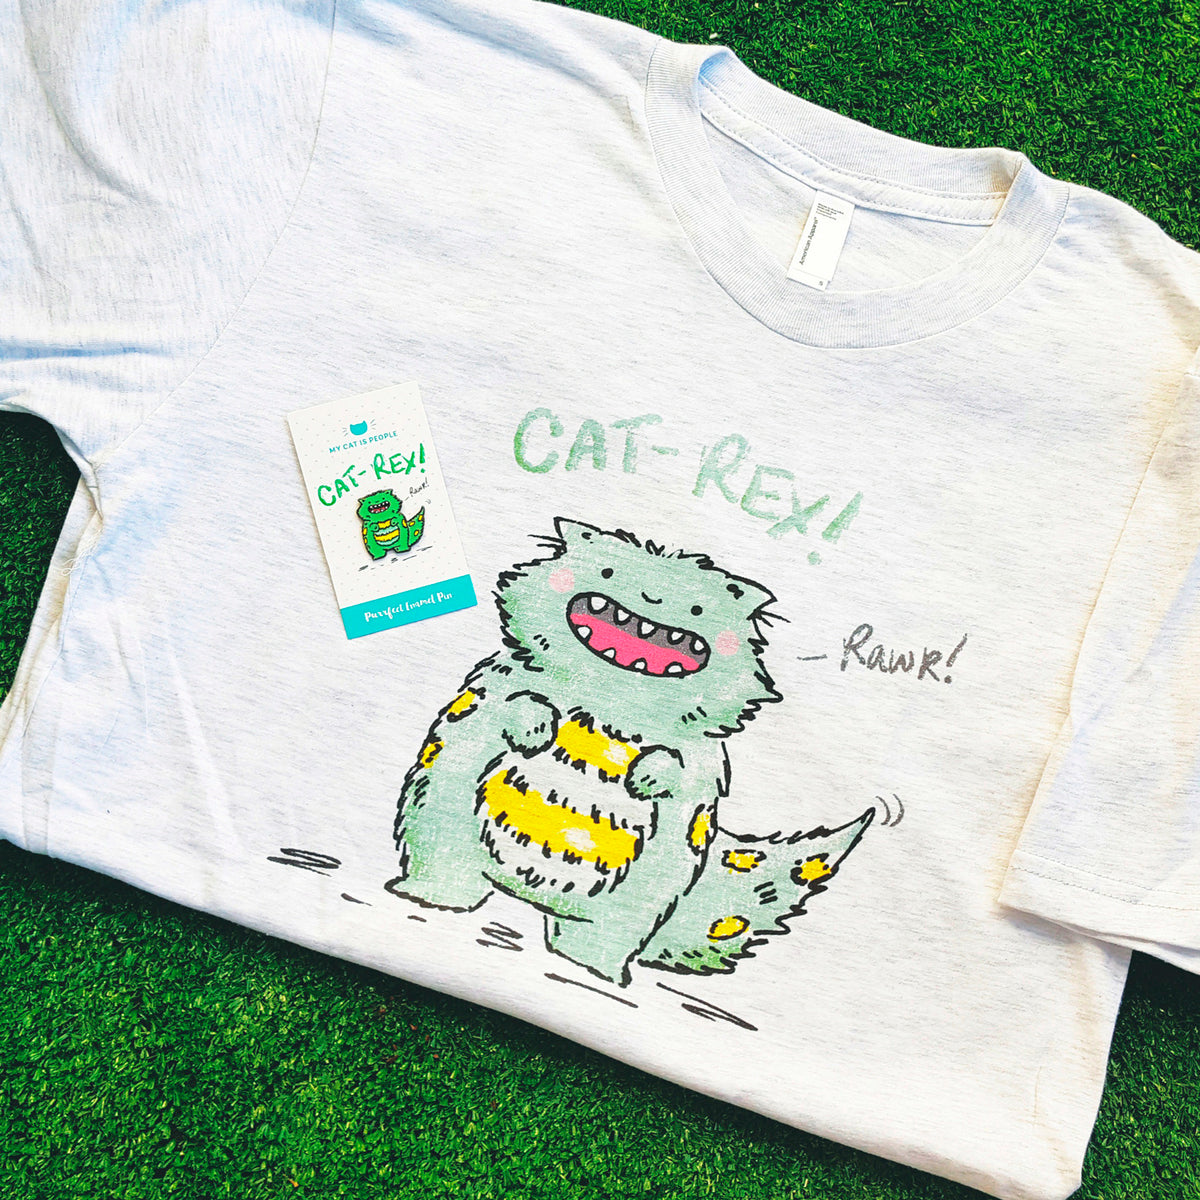 Cat Rex - Direct-to-garment printed t-shirt. Half munchkin cat, had t-rex dinosaur. Rawr!